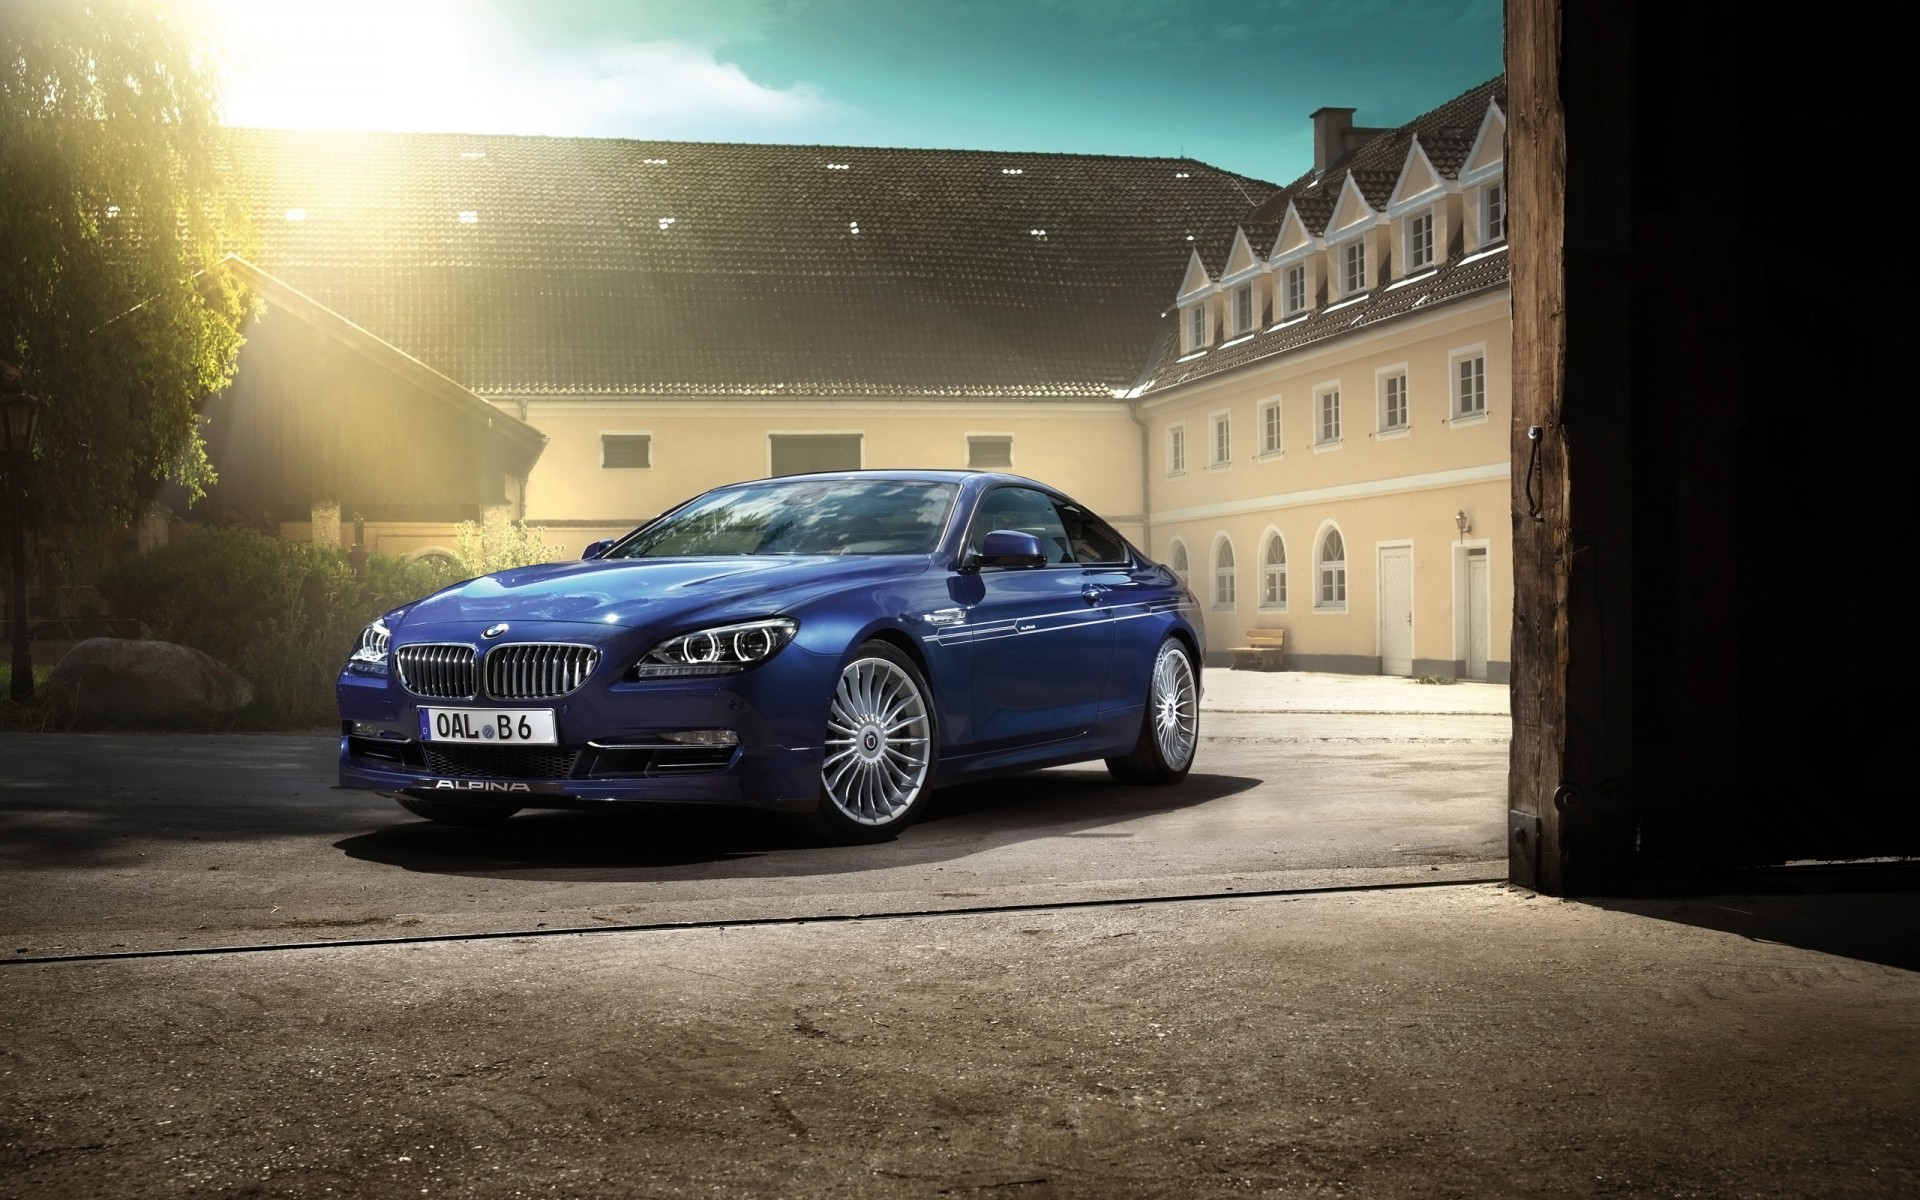 2014 Bmw Alpina B6 Bi Turbo Gran Coupe Wallpaper Hd Car